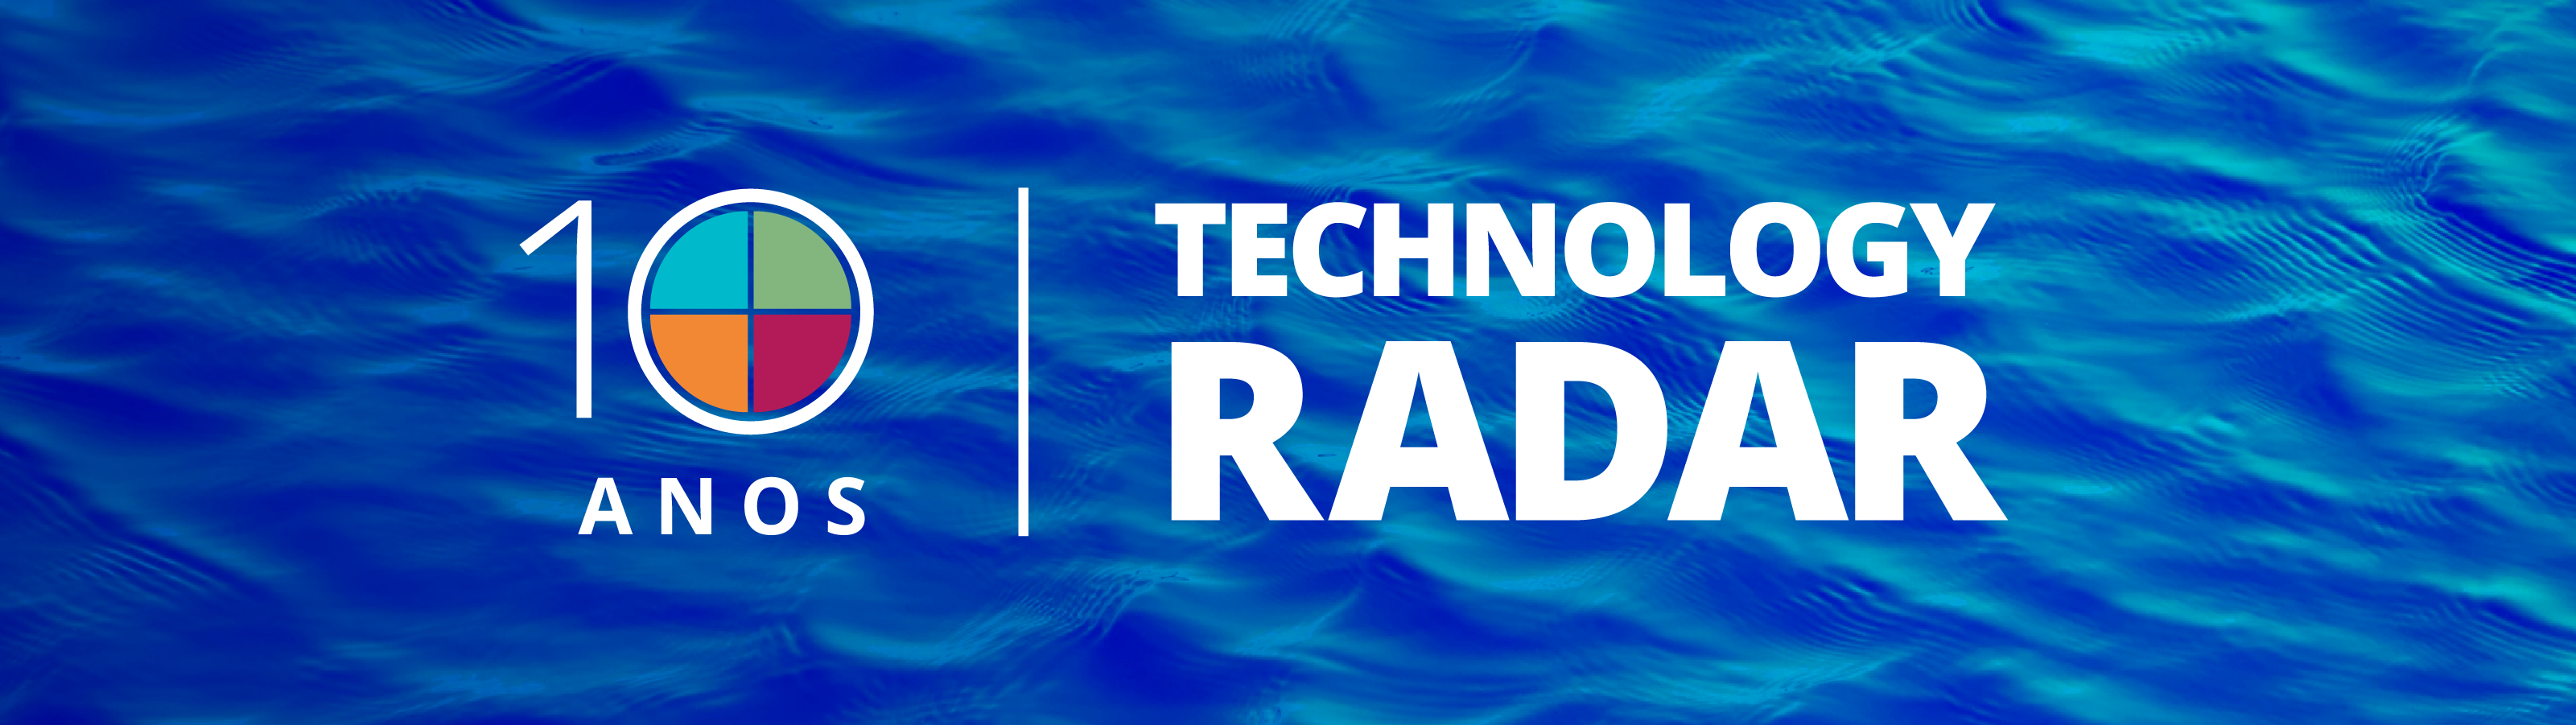 10 anos de Tech Radar